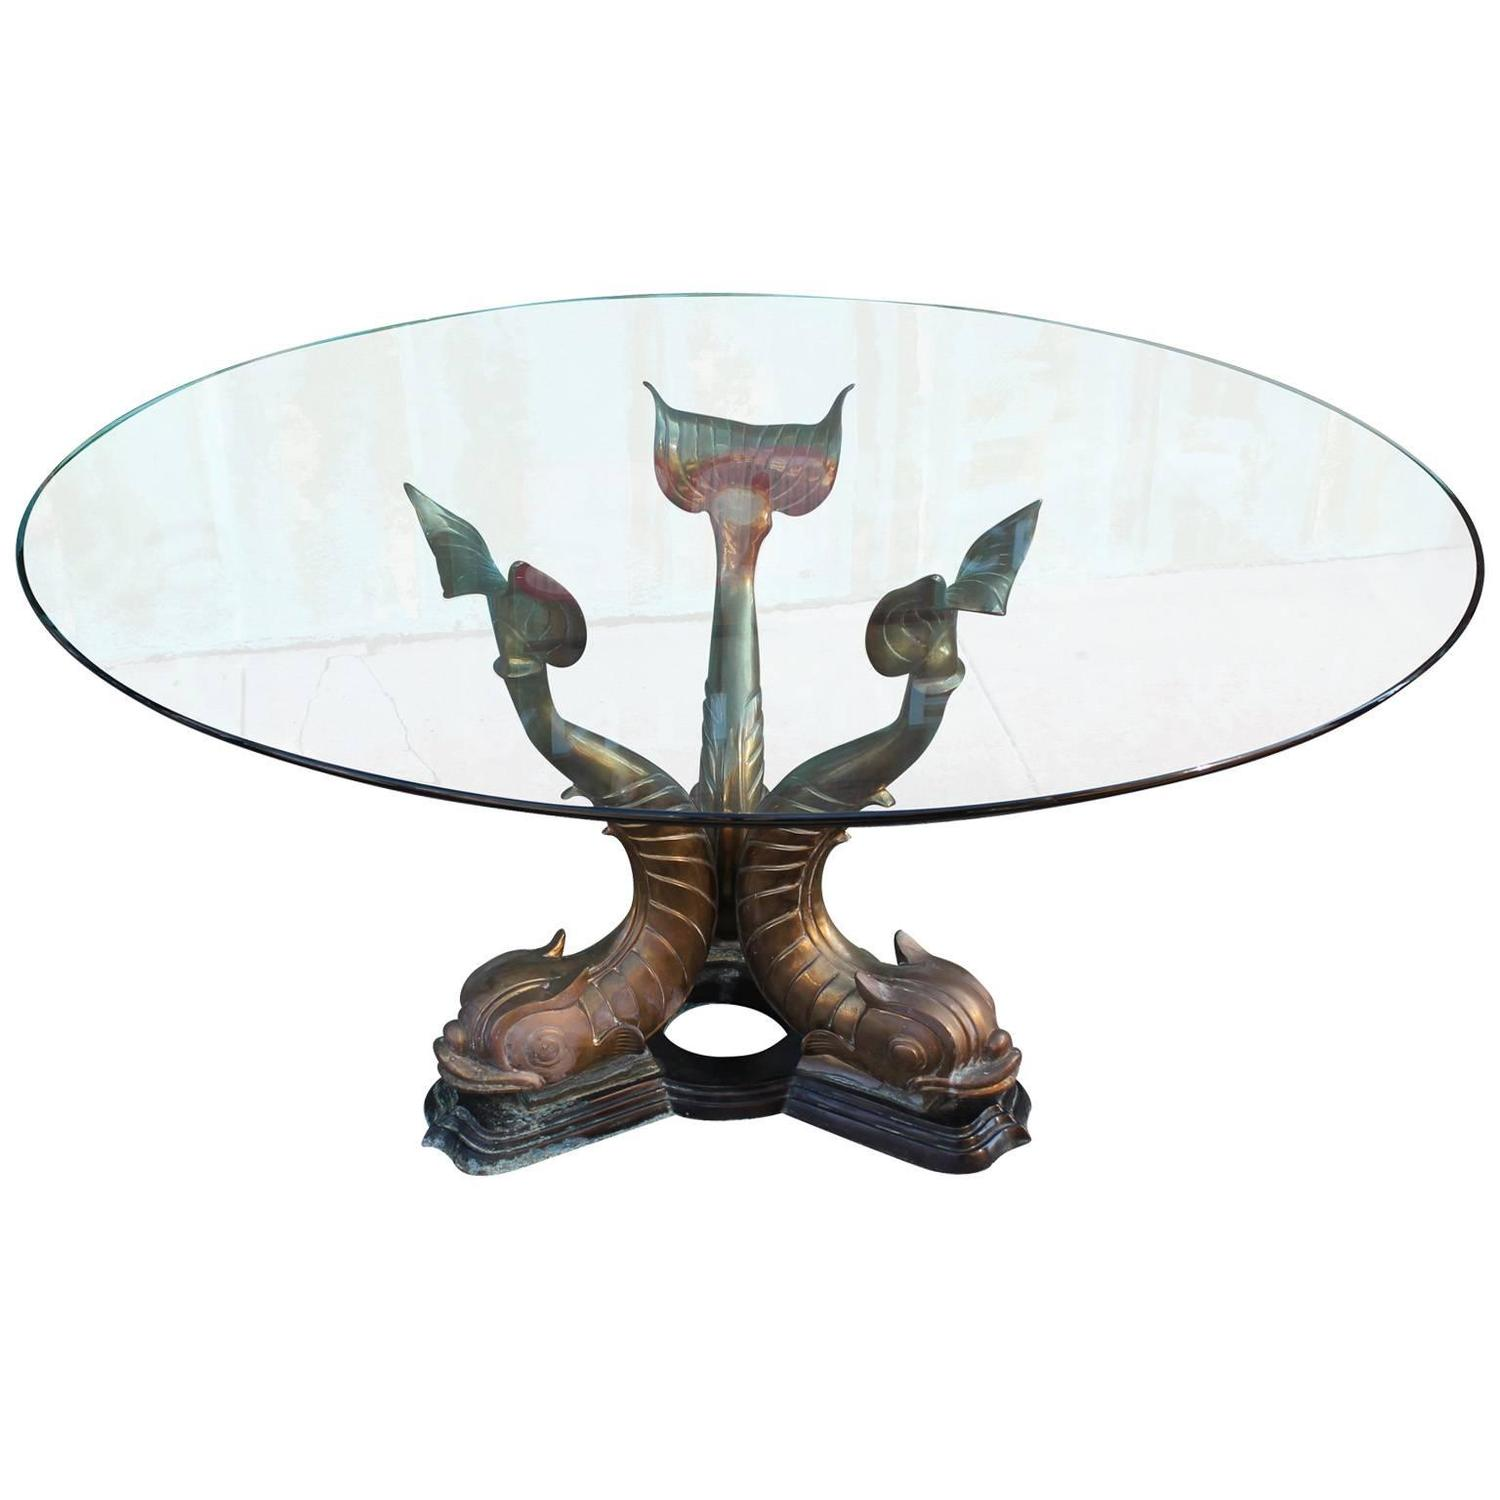 Fabulous Round Brass and Glass Dolphin Fish Dining Table For Sale